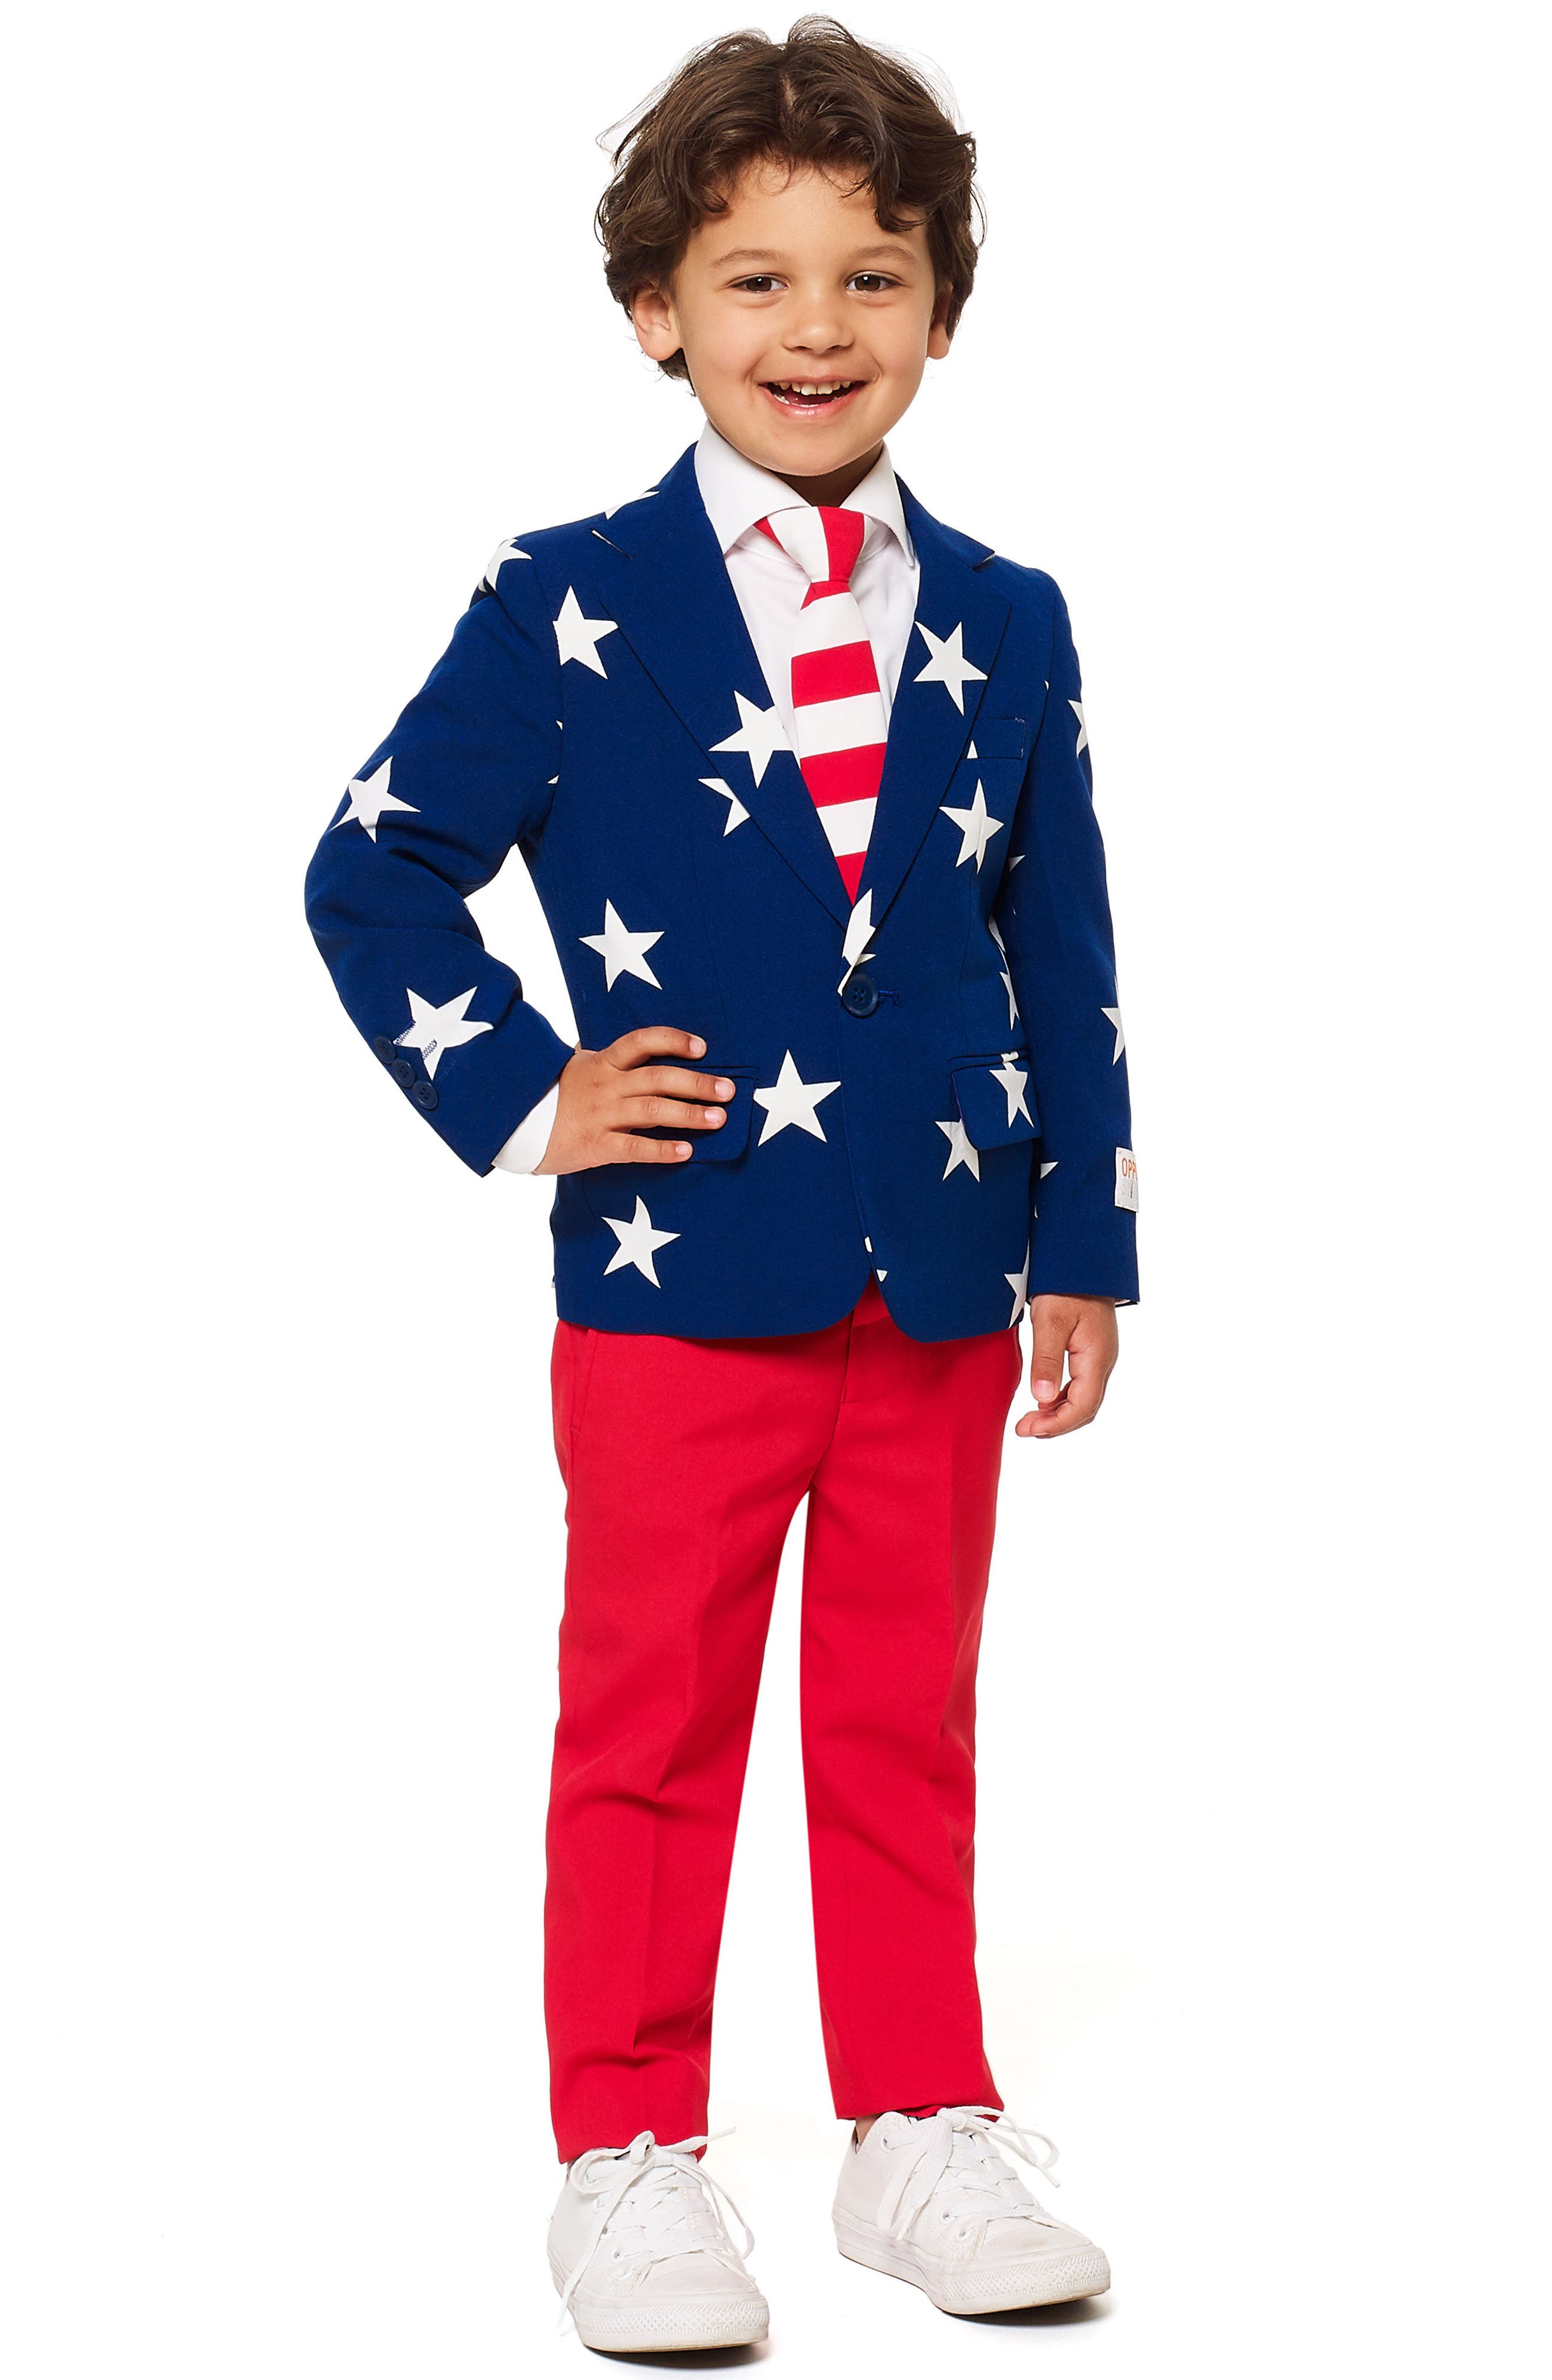 Stars & Stripes Two-Piece Suit with Tie,                         Main,                         color, BLUE